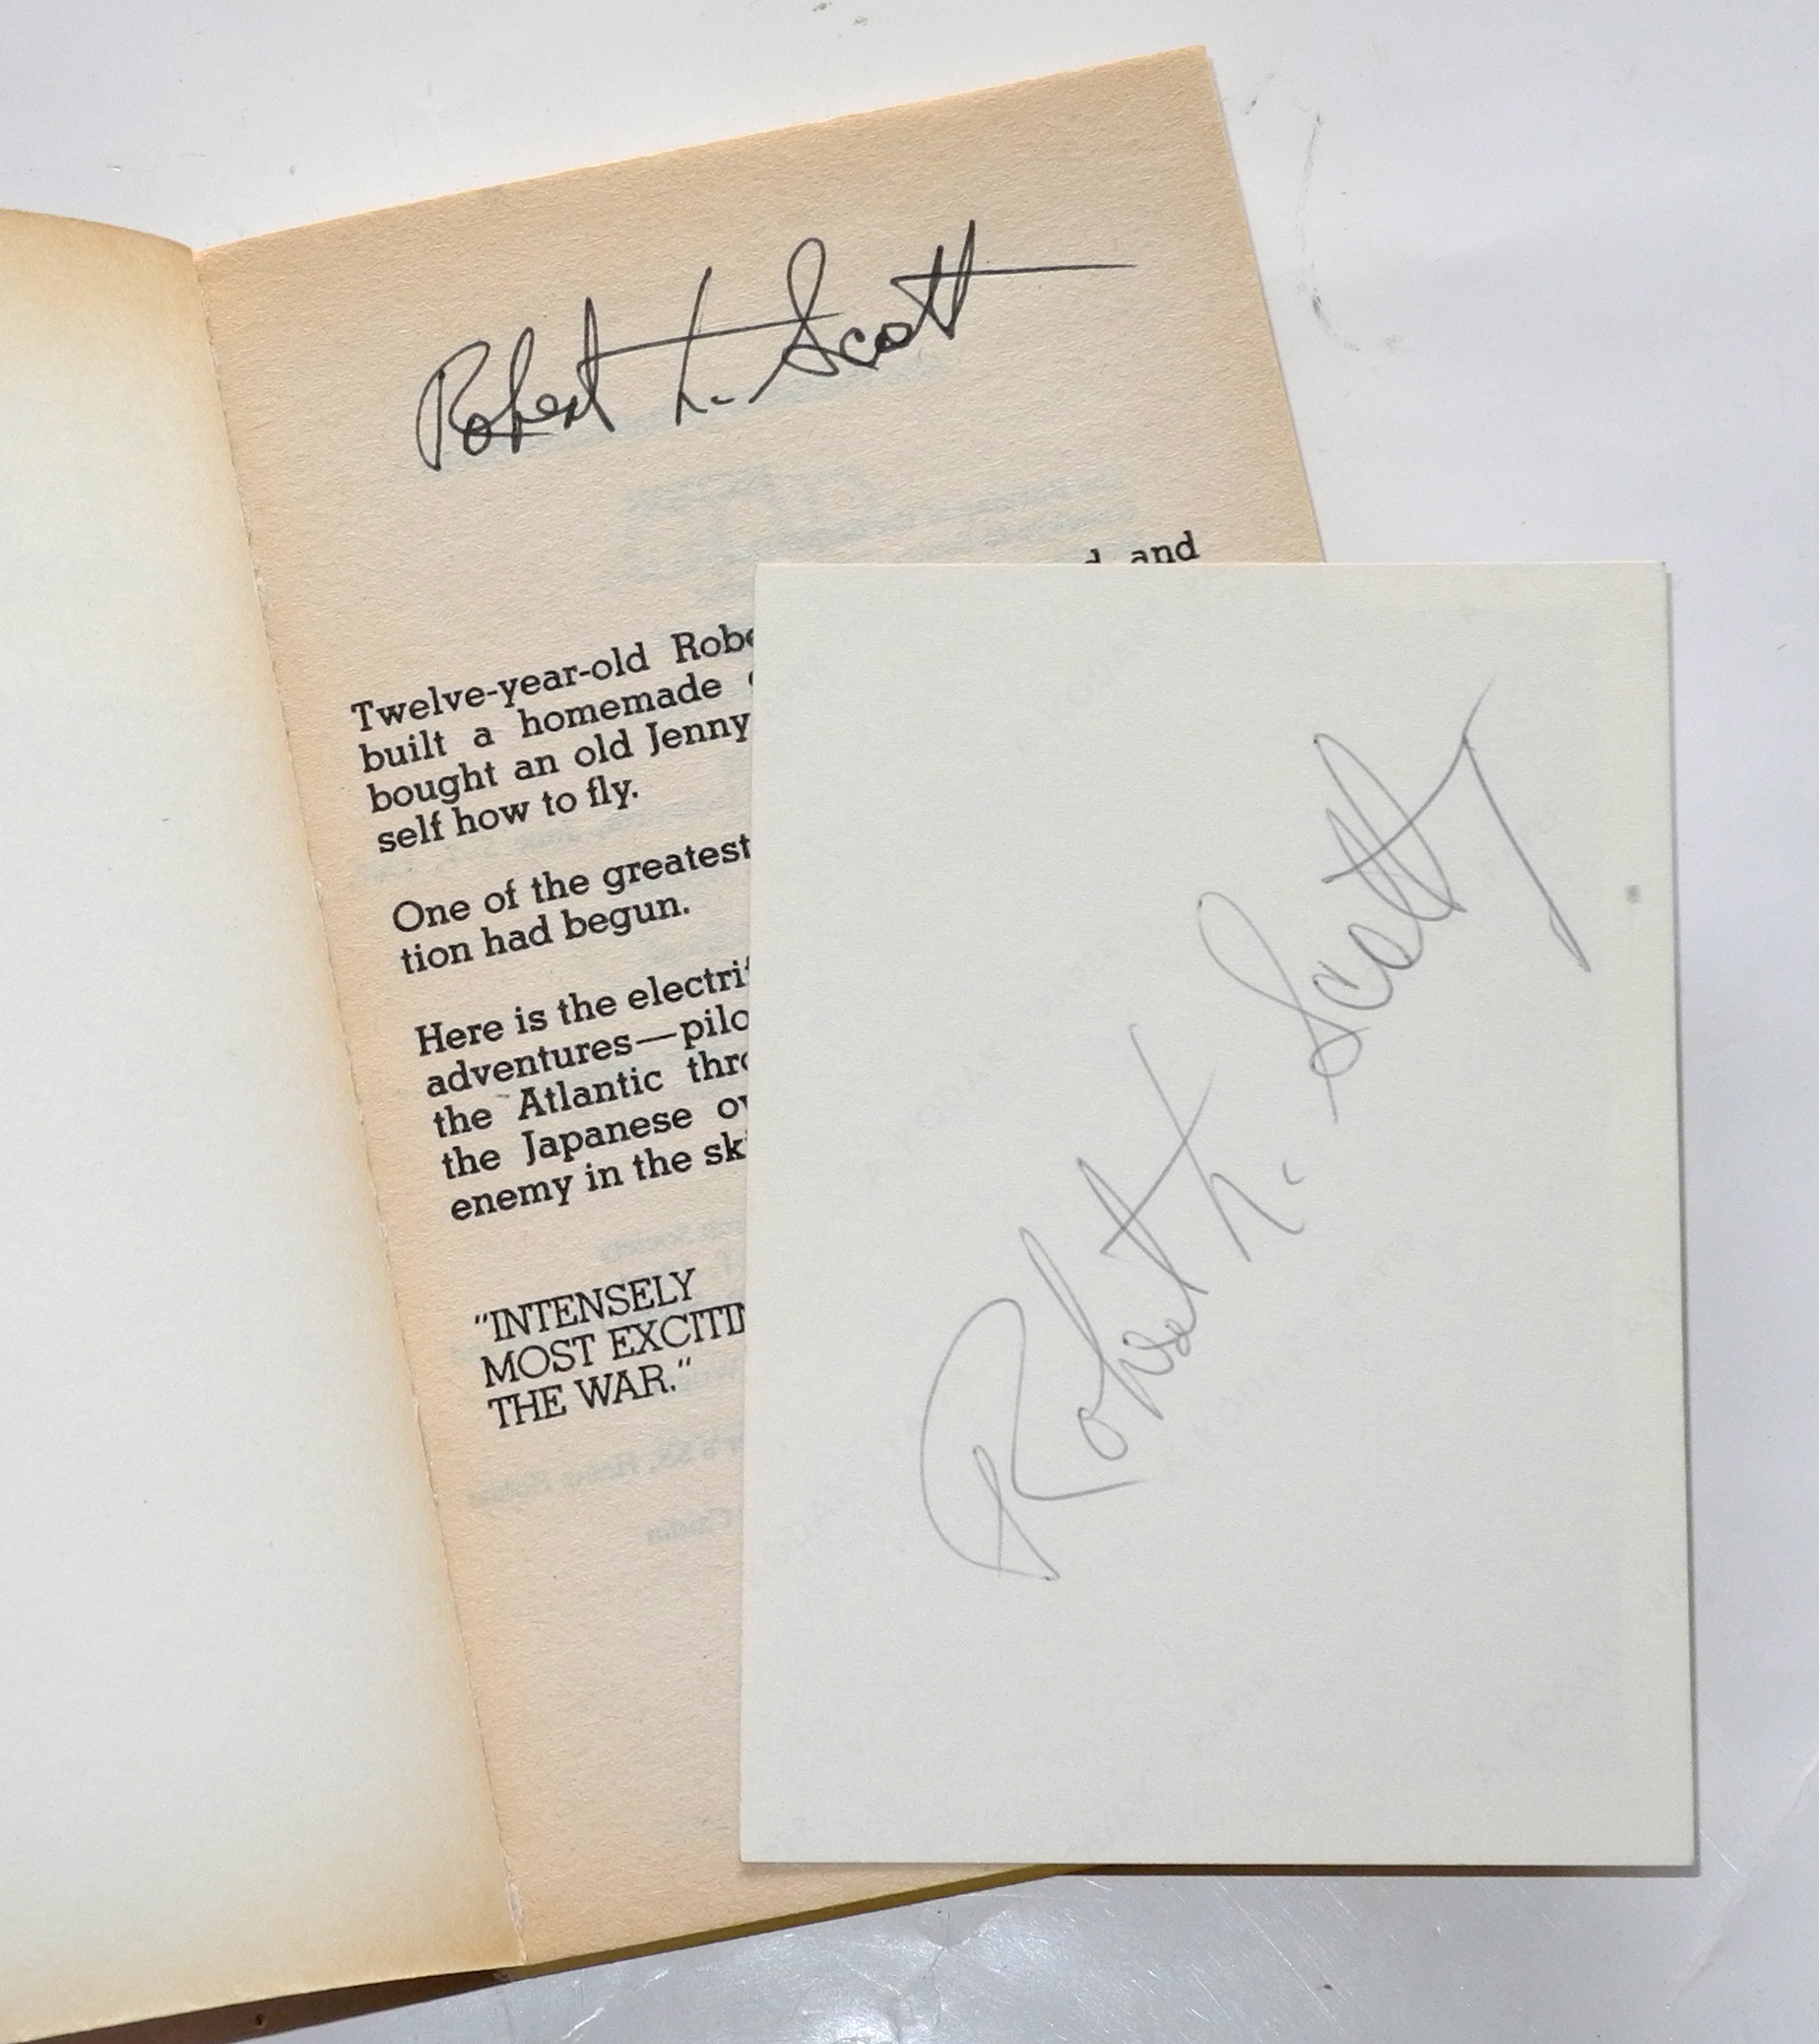 Robert Scott signed book